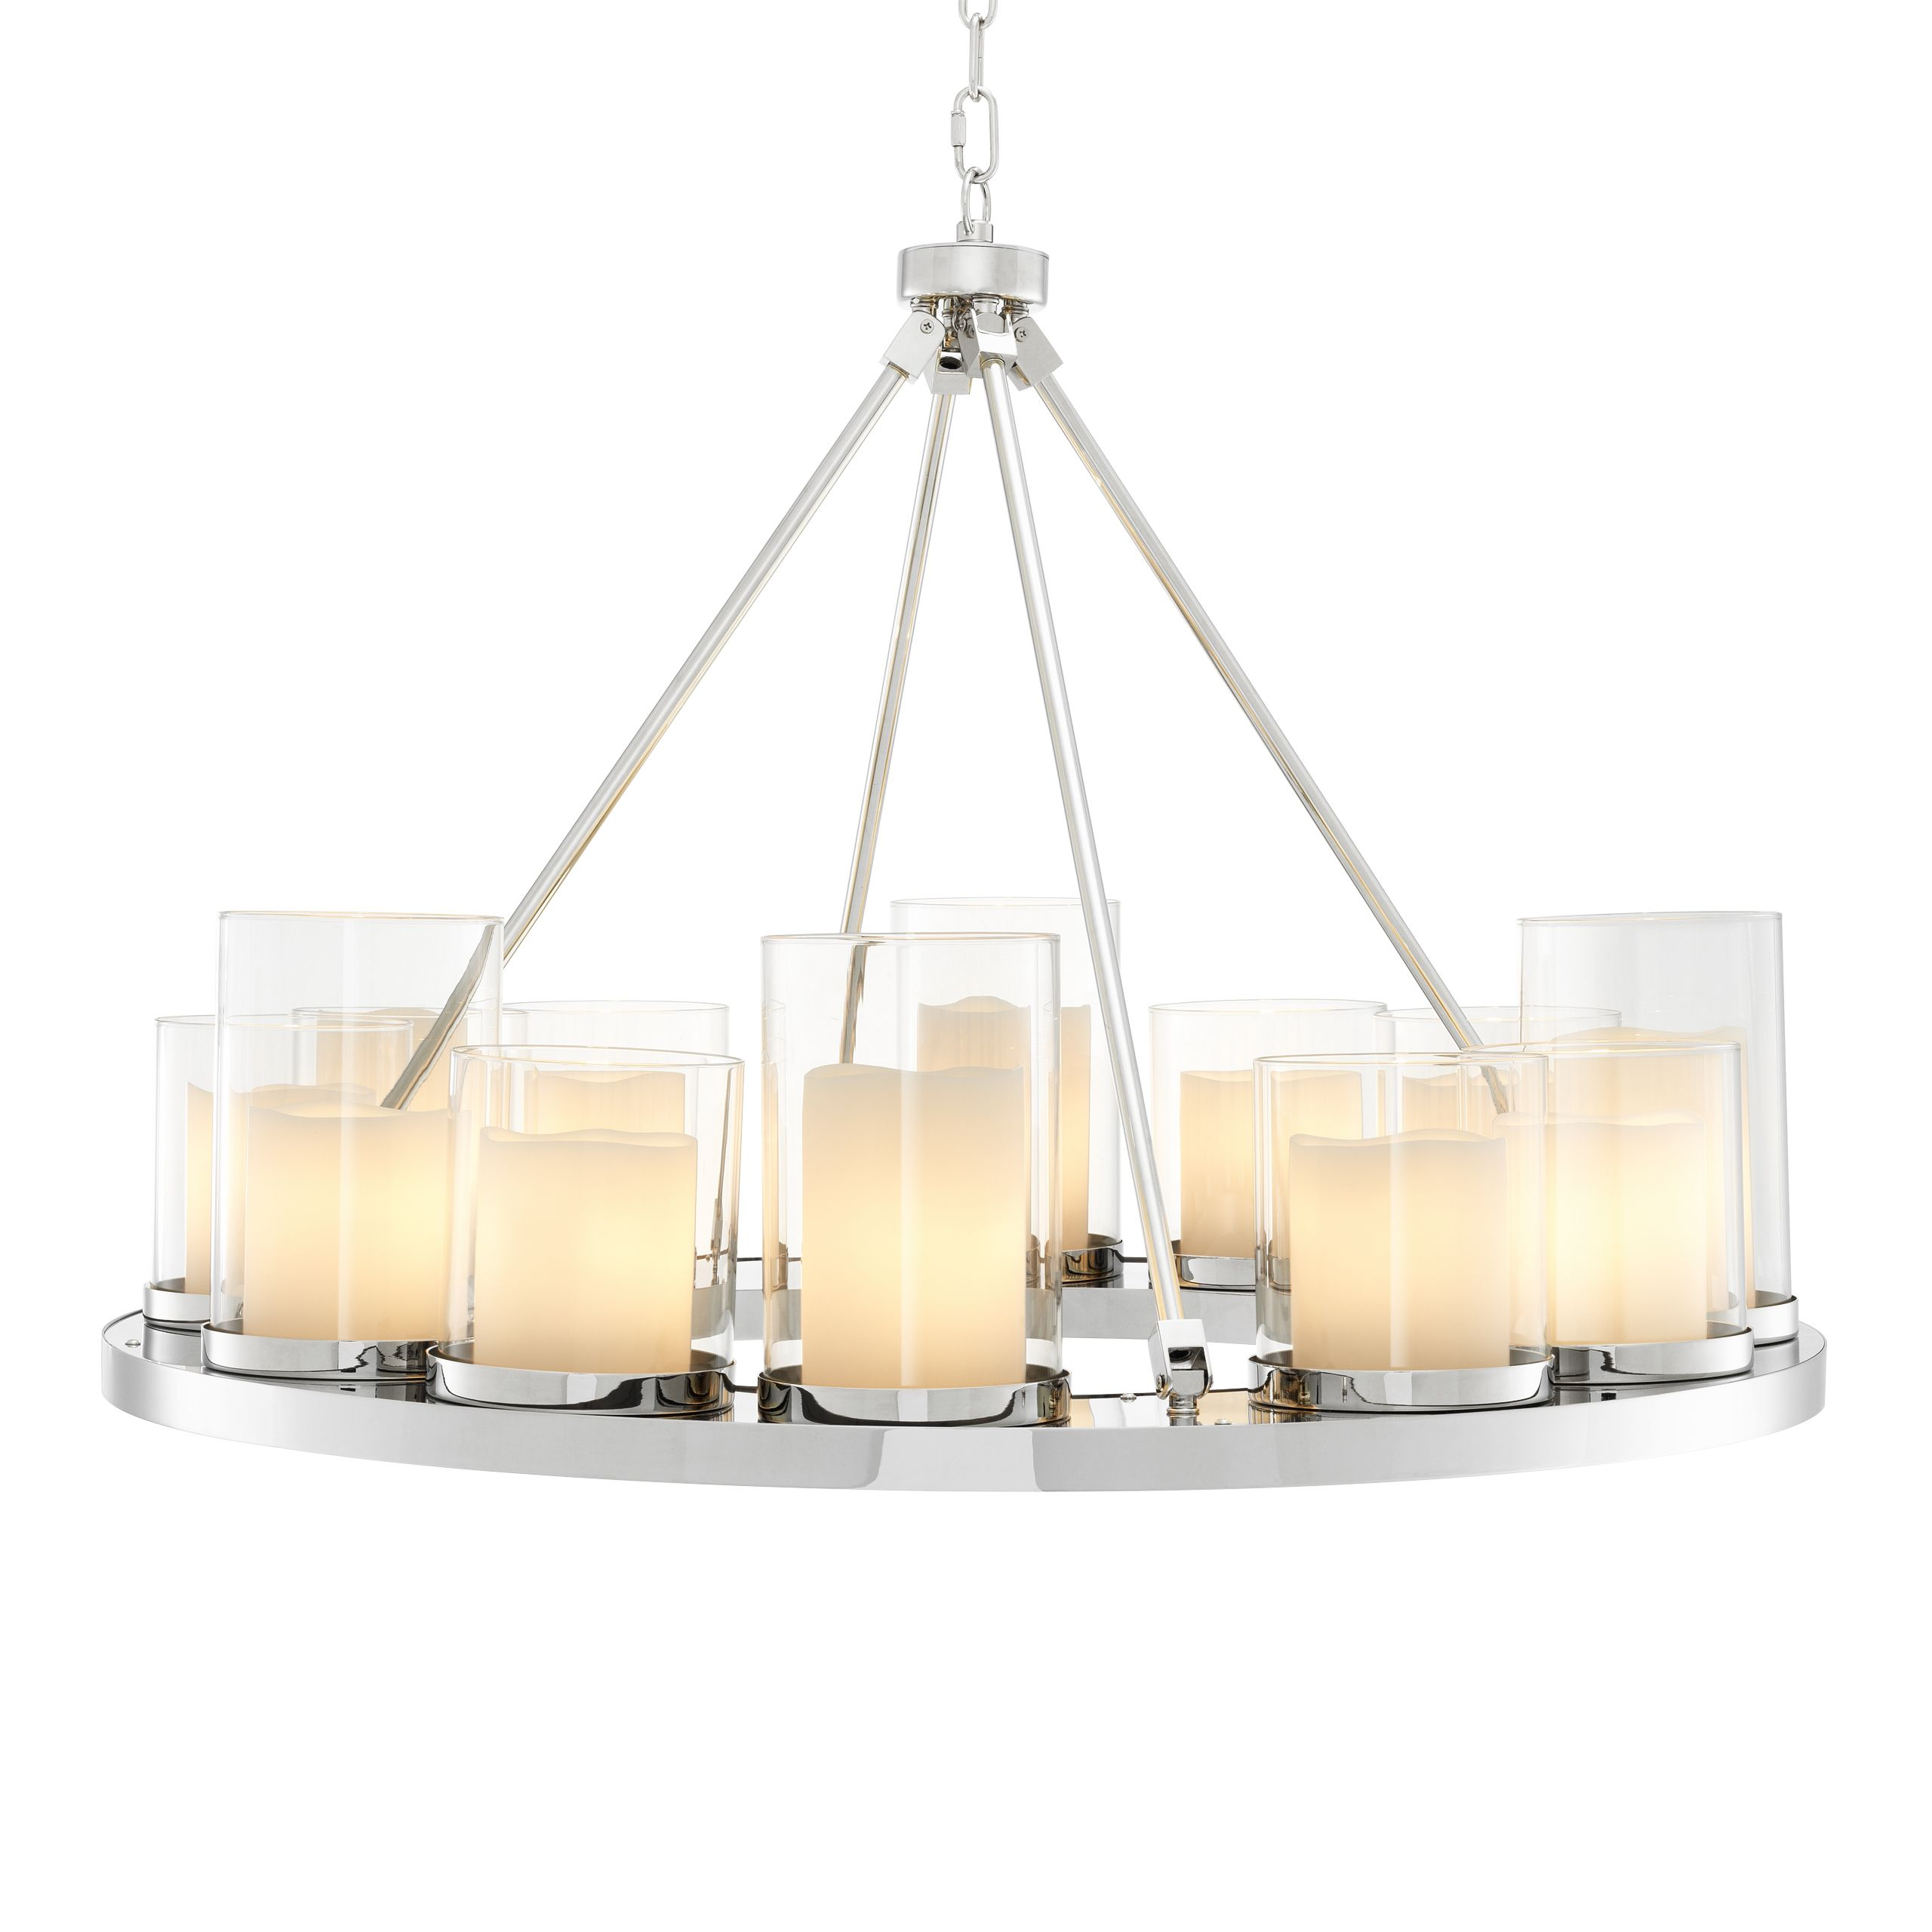 Arcadia Verlichting Eichholtz Furniture Lighting Home Design Chandelier Summit ø